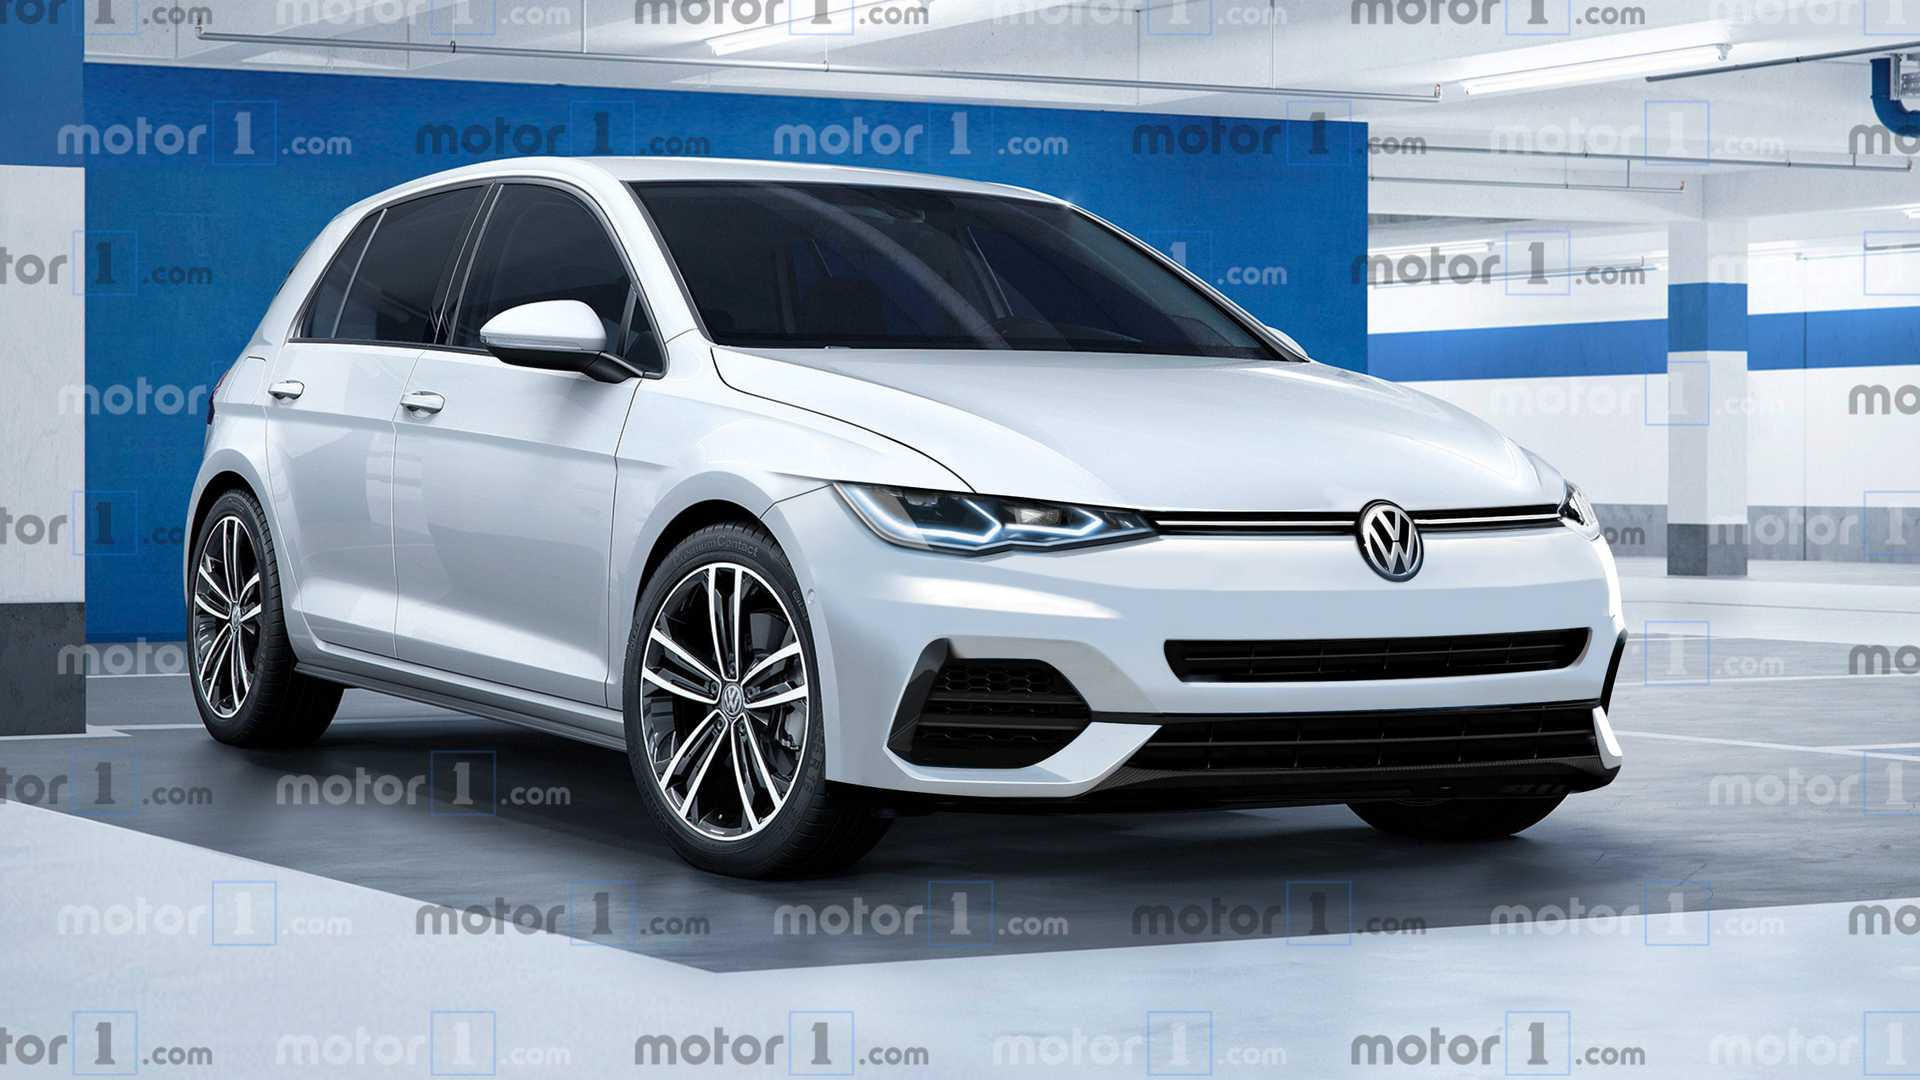 2020 VW Golf 8 officially confirmed for 24 October reveal